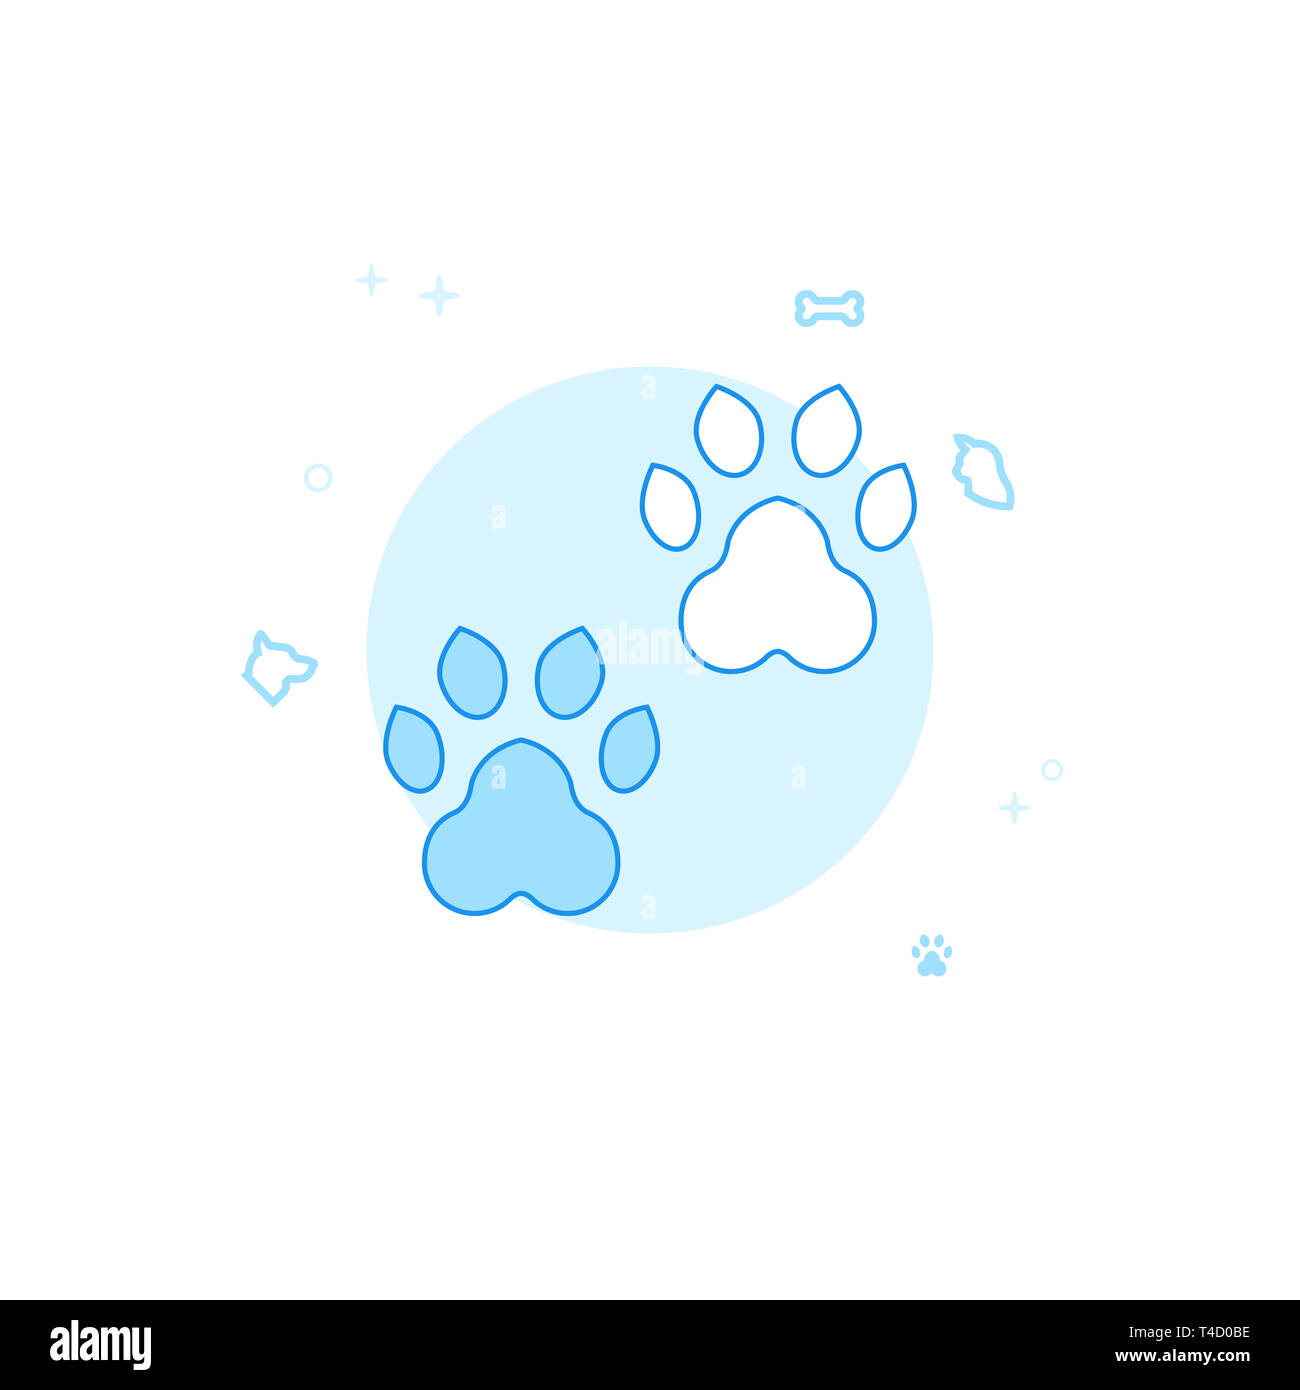 Animal Tracks, Footprints Flat Icon. Pet and Pet Supply Illustration. Light Flat Style. Blue Monochrome Design. - Stock Image